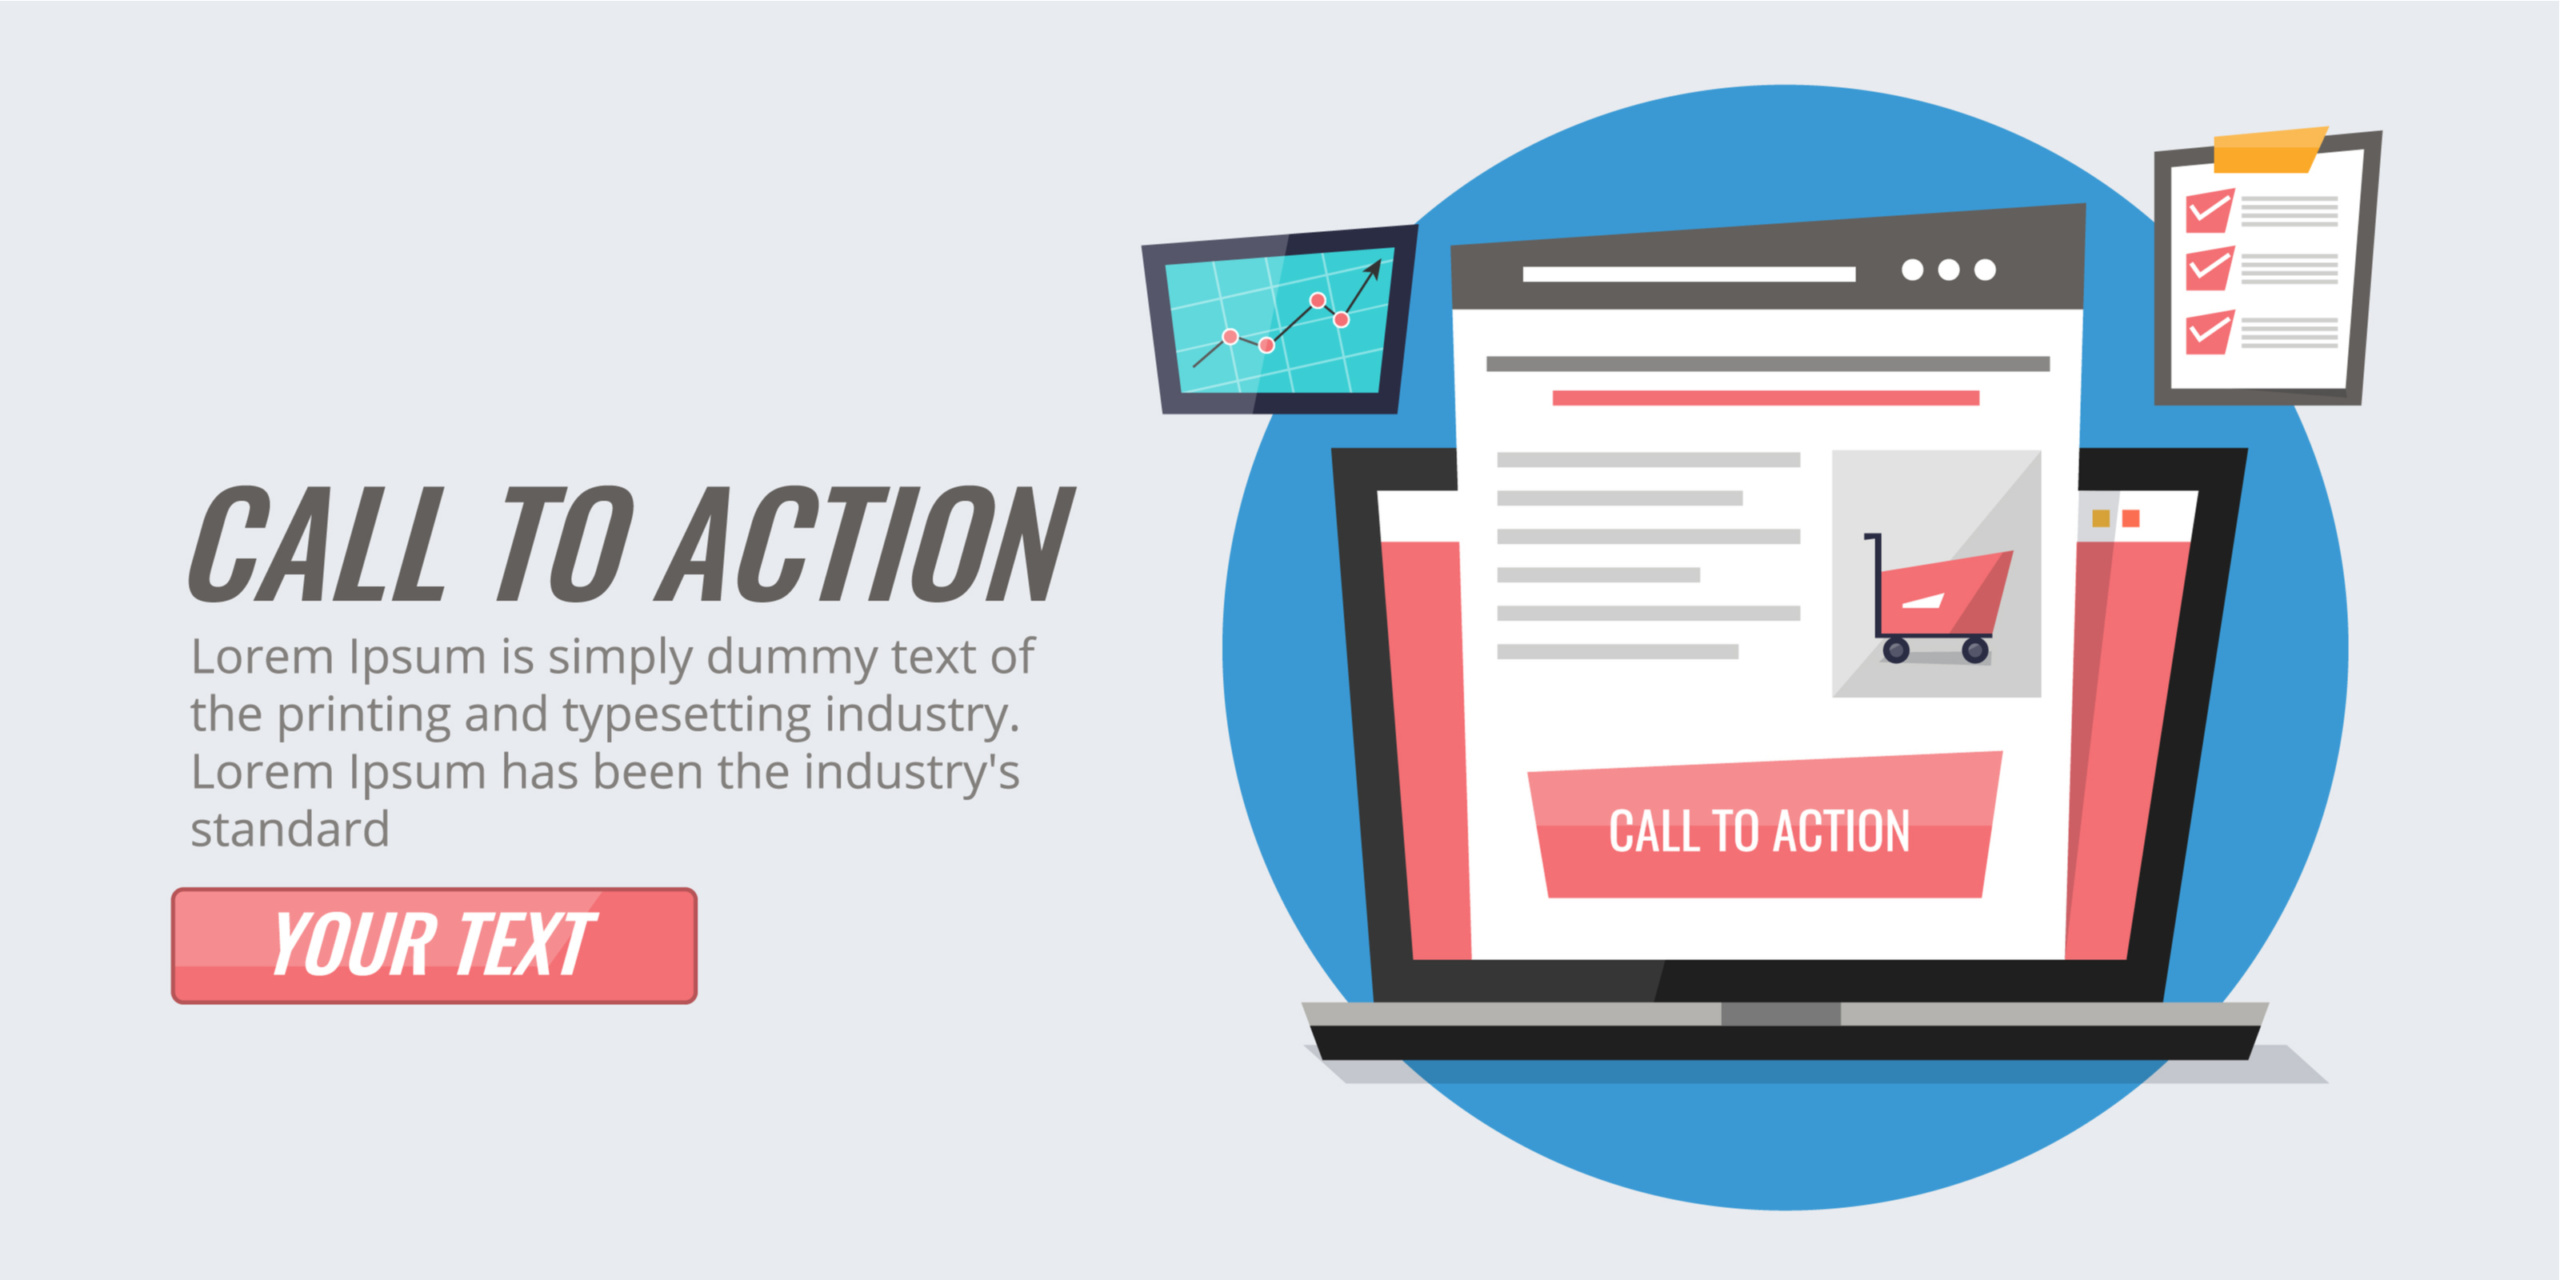 Call to Action or invitation to action is essential to convert the landing page